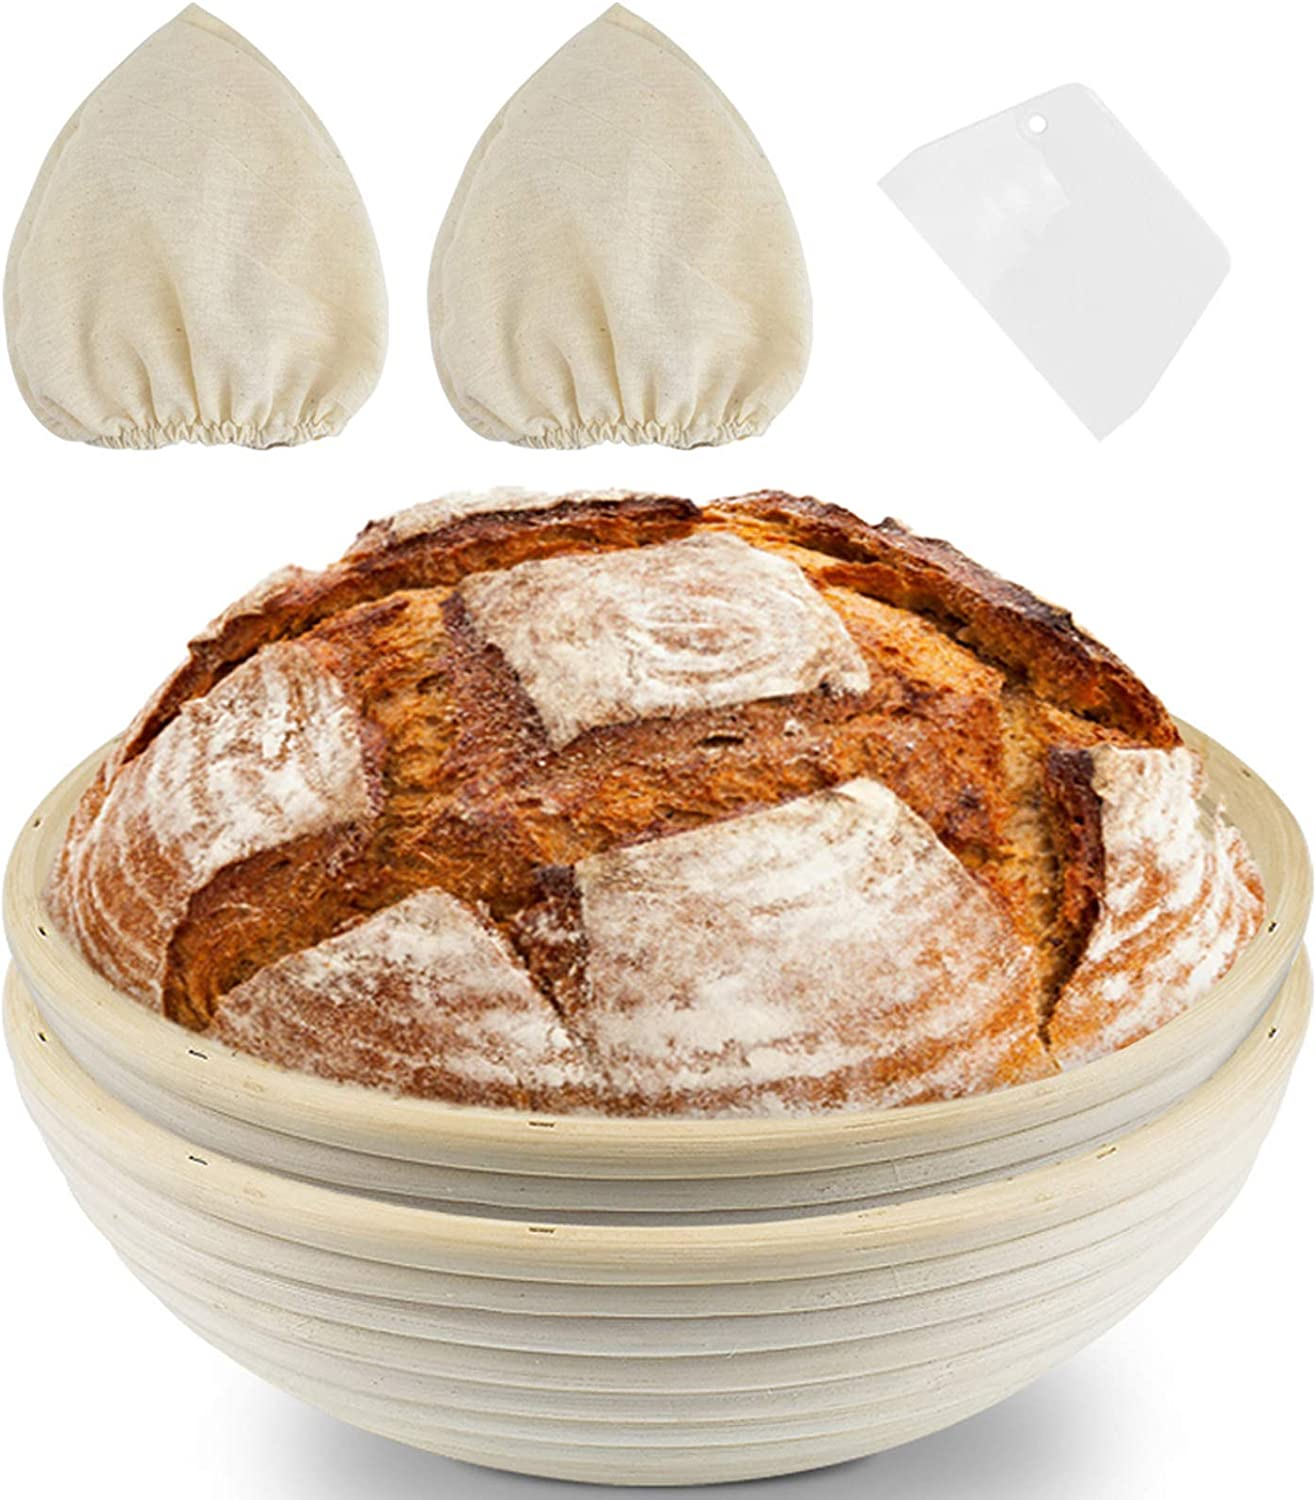 KATUMO 10 Inch Al sold out. Bread Seasonal Wrap Introduction Proofing Round Pack Proofin Basket 2